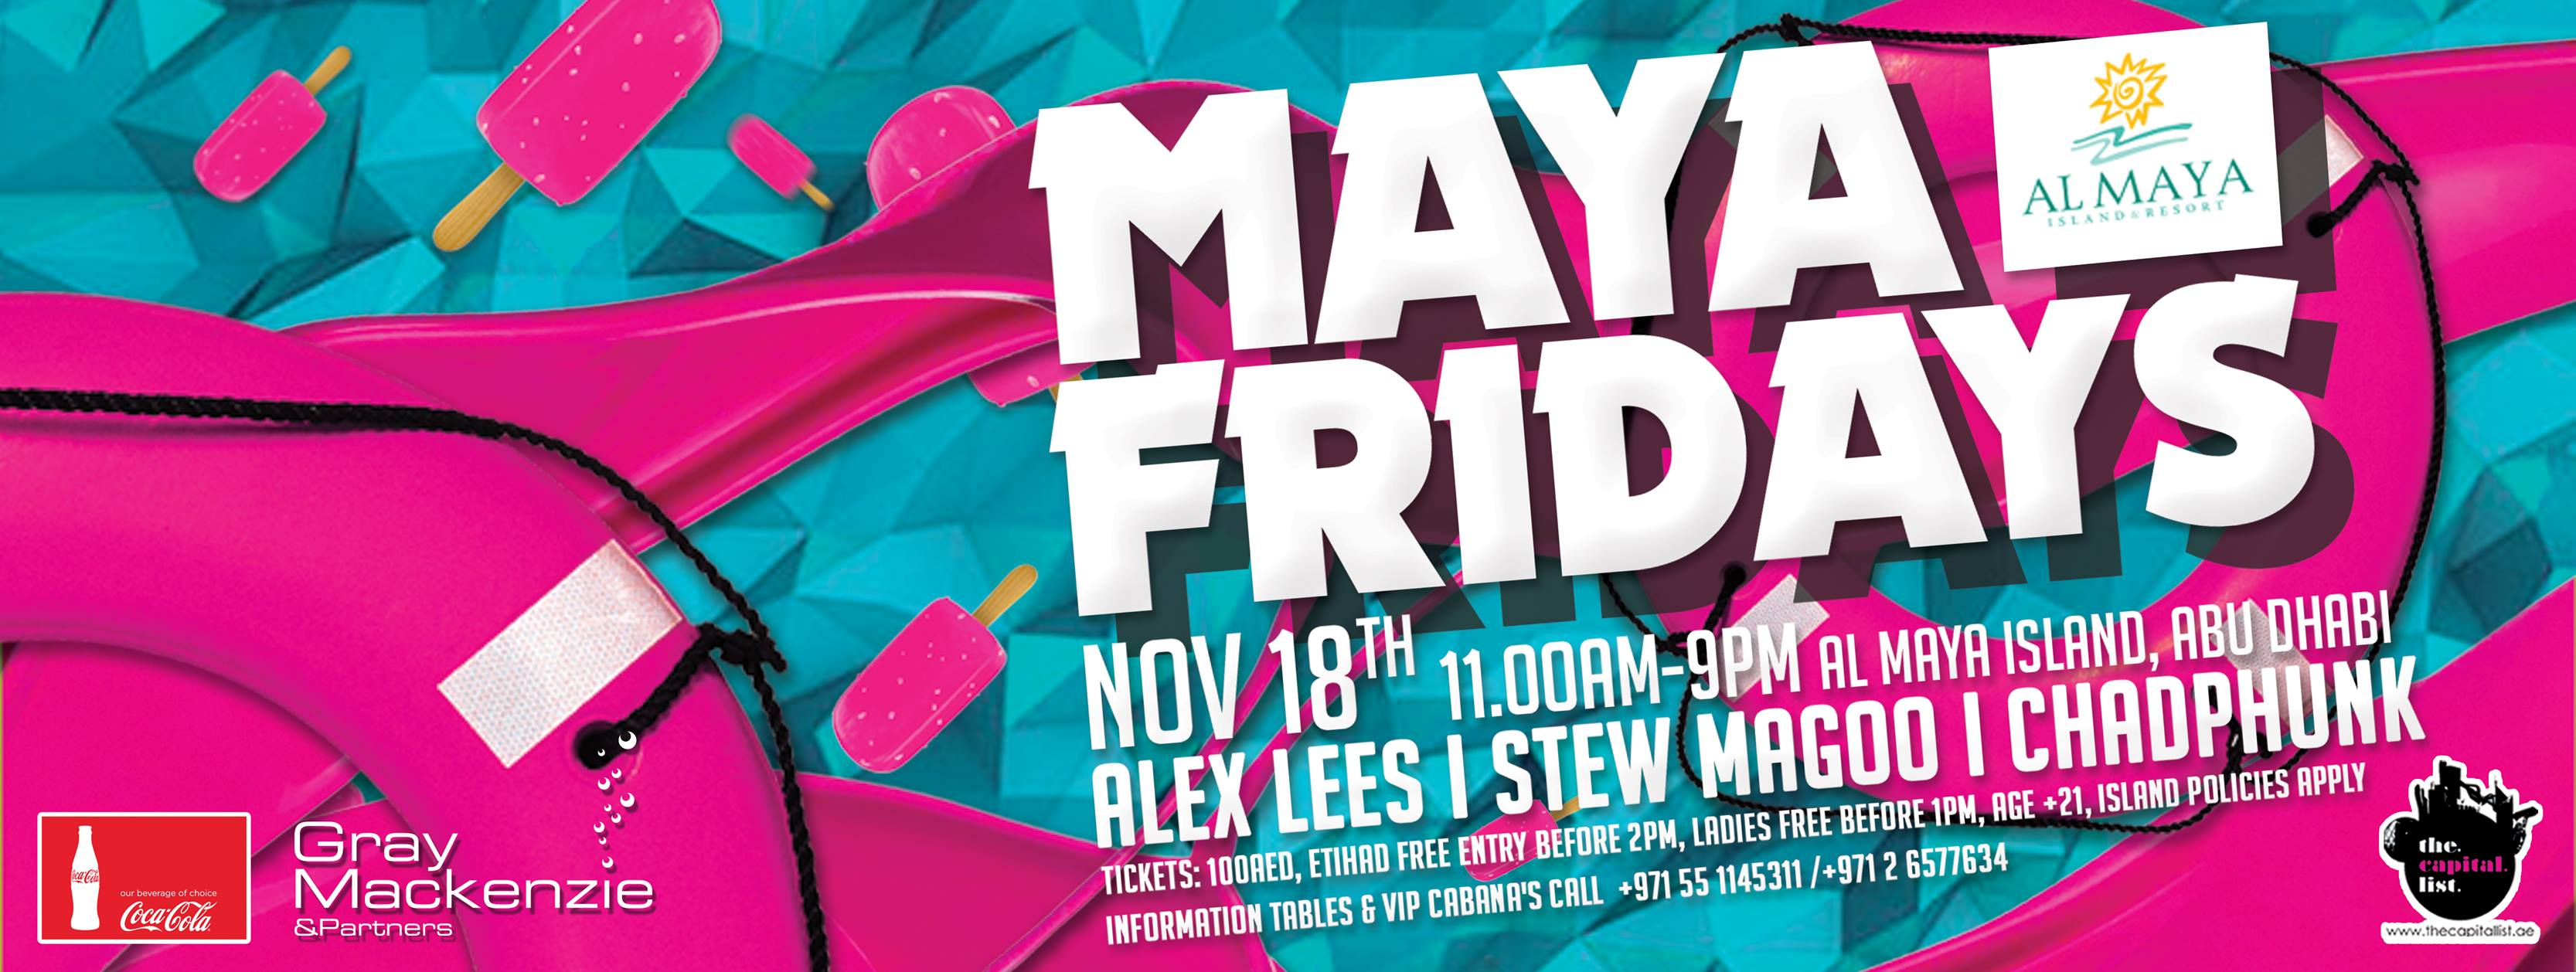 Maya Friday's 18 November at Al Maya Island!